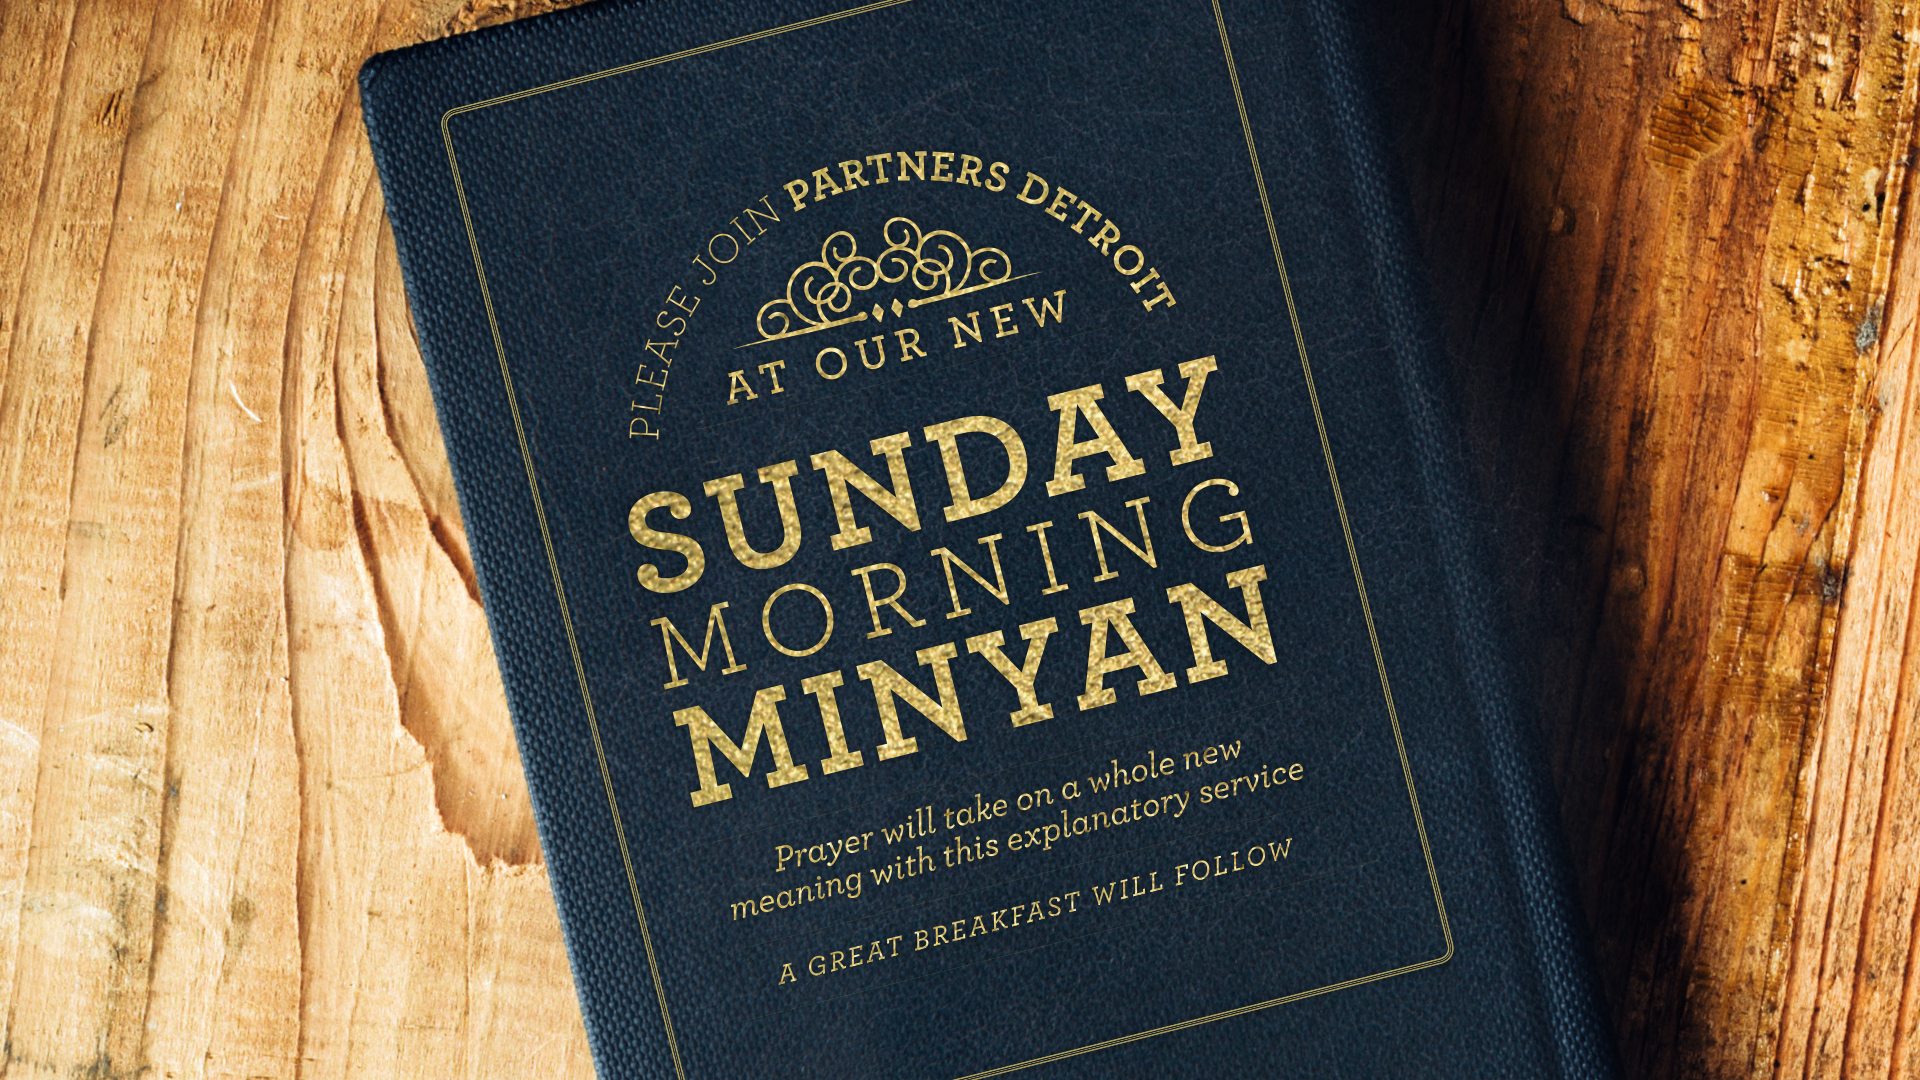 Sunday Morning Minyan for Men